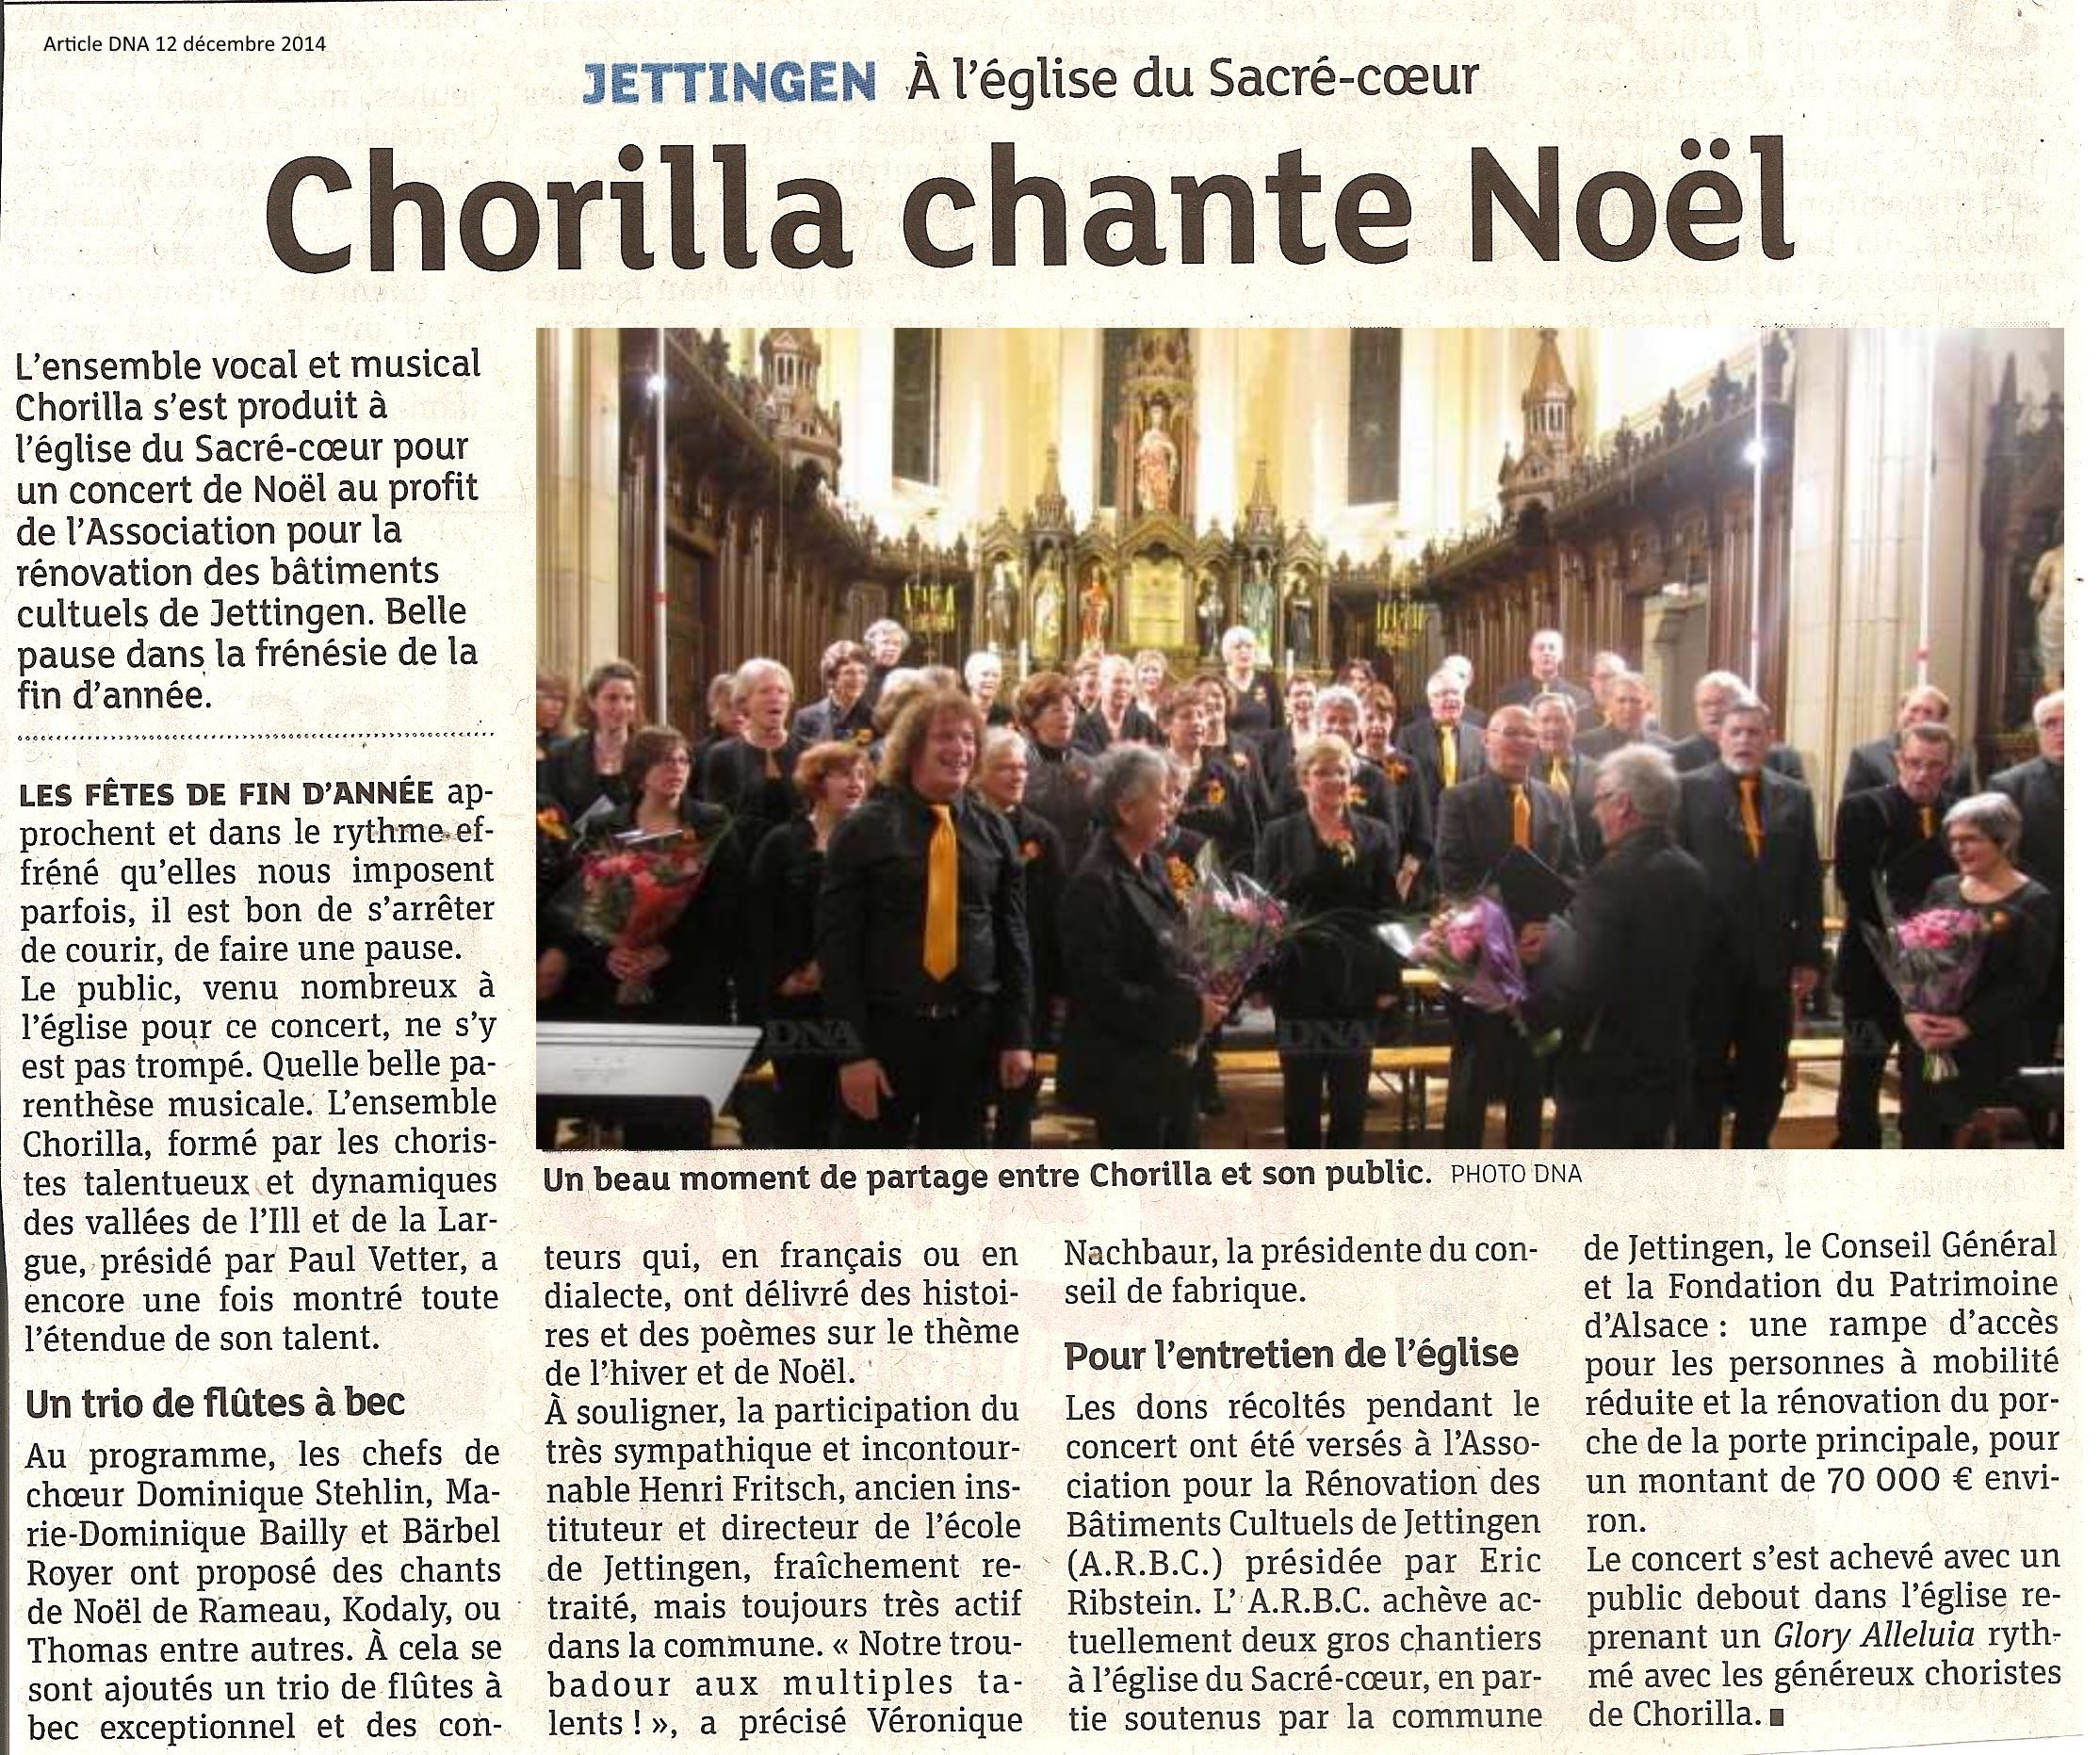 chorilla-article-dna-12-12-2014-2016-12-08-06-24-44-utc.jpg